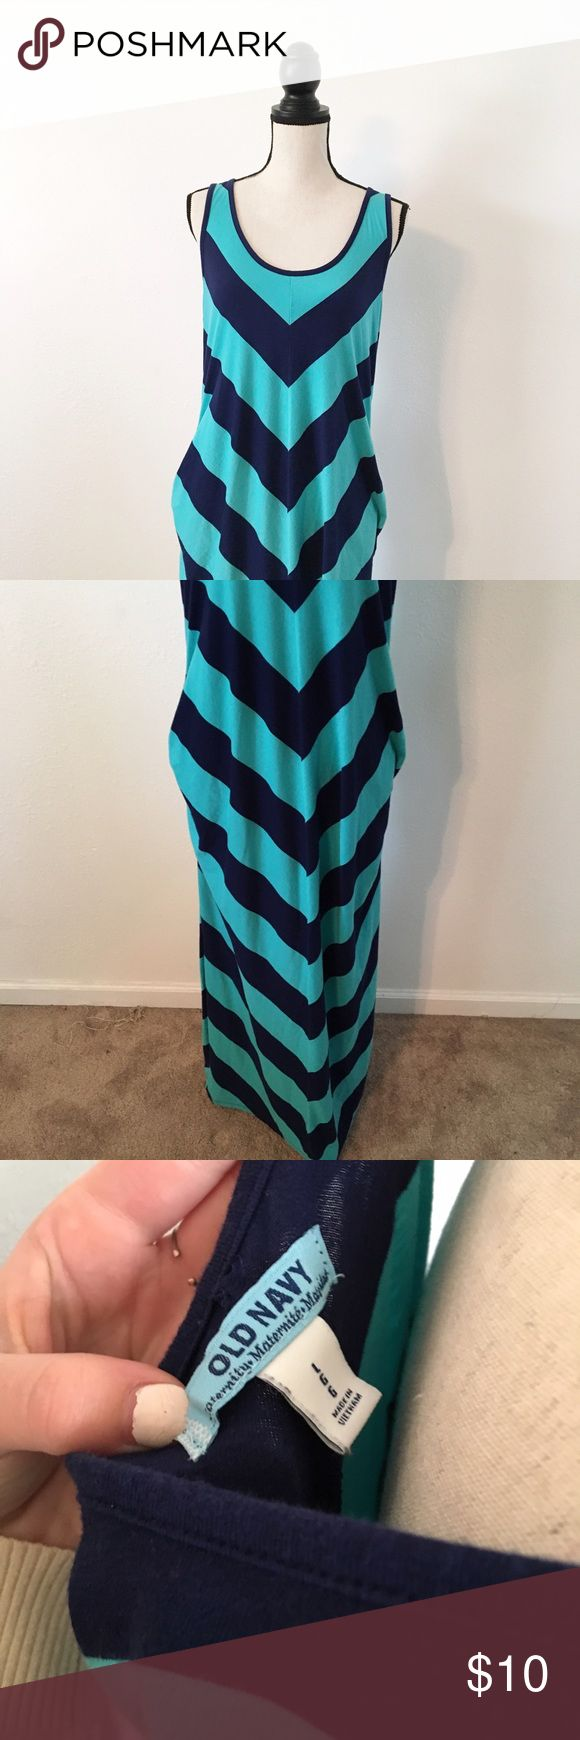 Old Navy Maternity Dress NwOT Never worn! Super cute. Old Navy Dresses Maxi